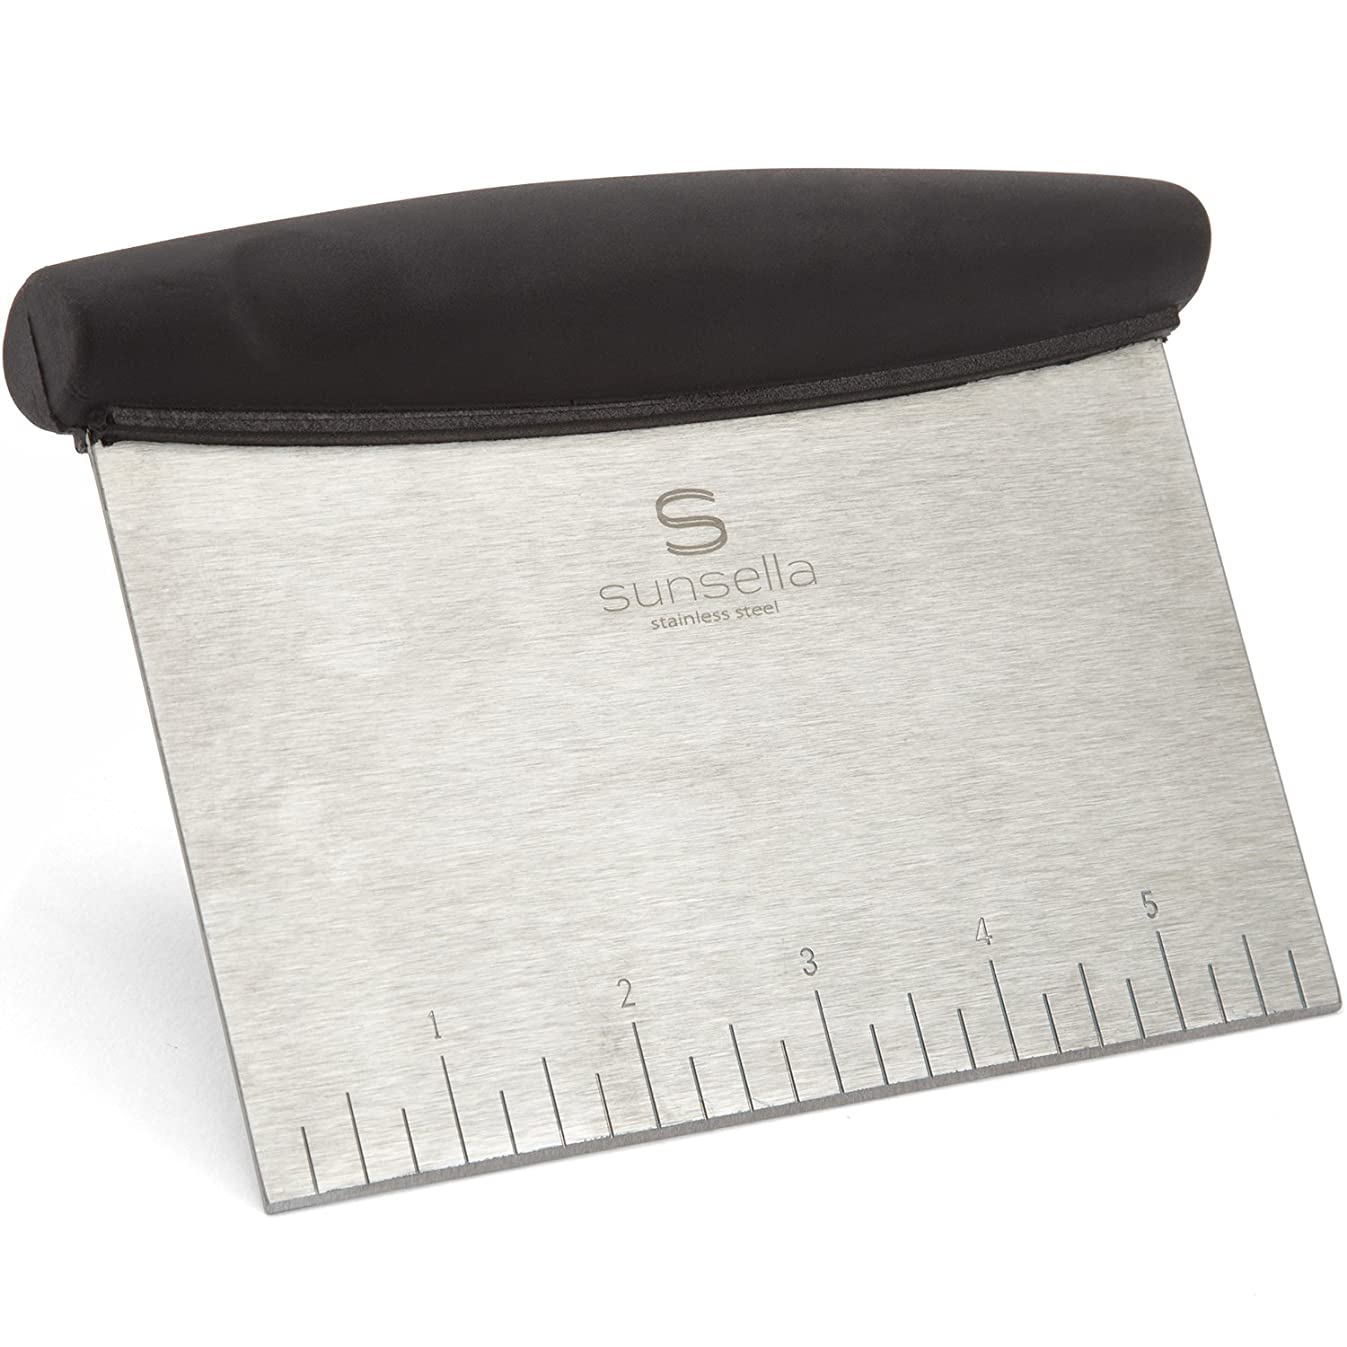 Heavy Duty Stainless Steel - Multi-Purpose, Pastry/Bench Scraper & Chopper With Ruler.By Sunsella